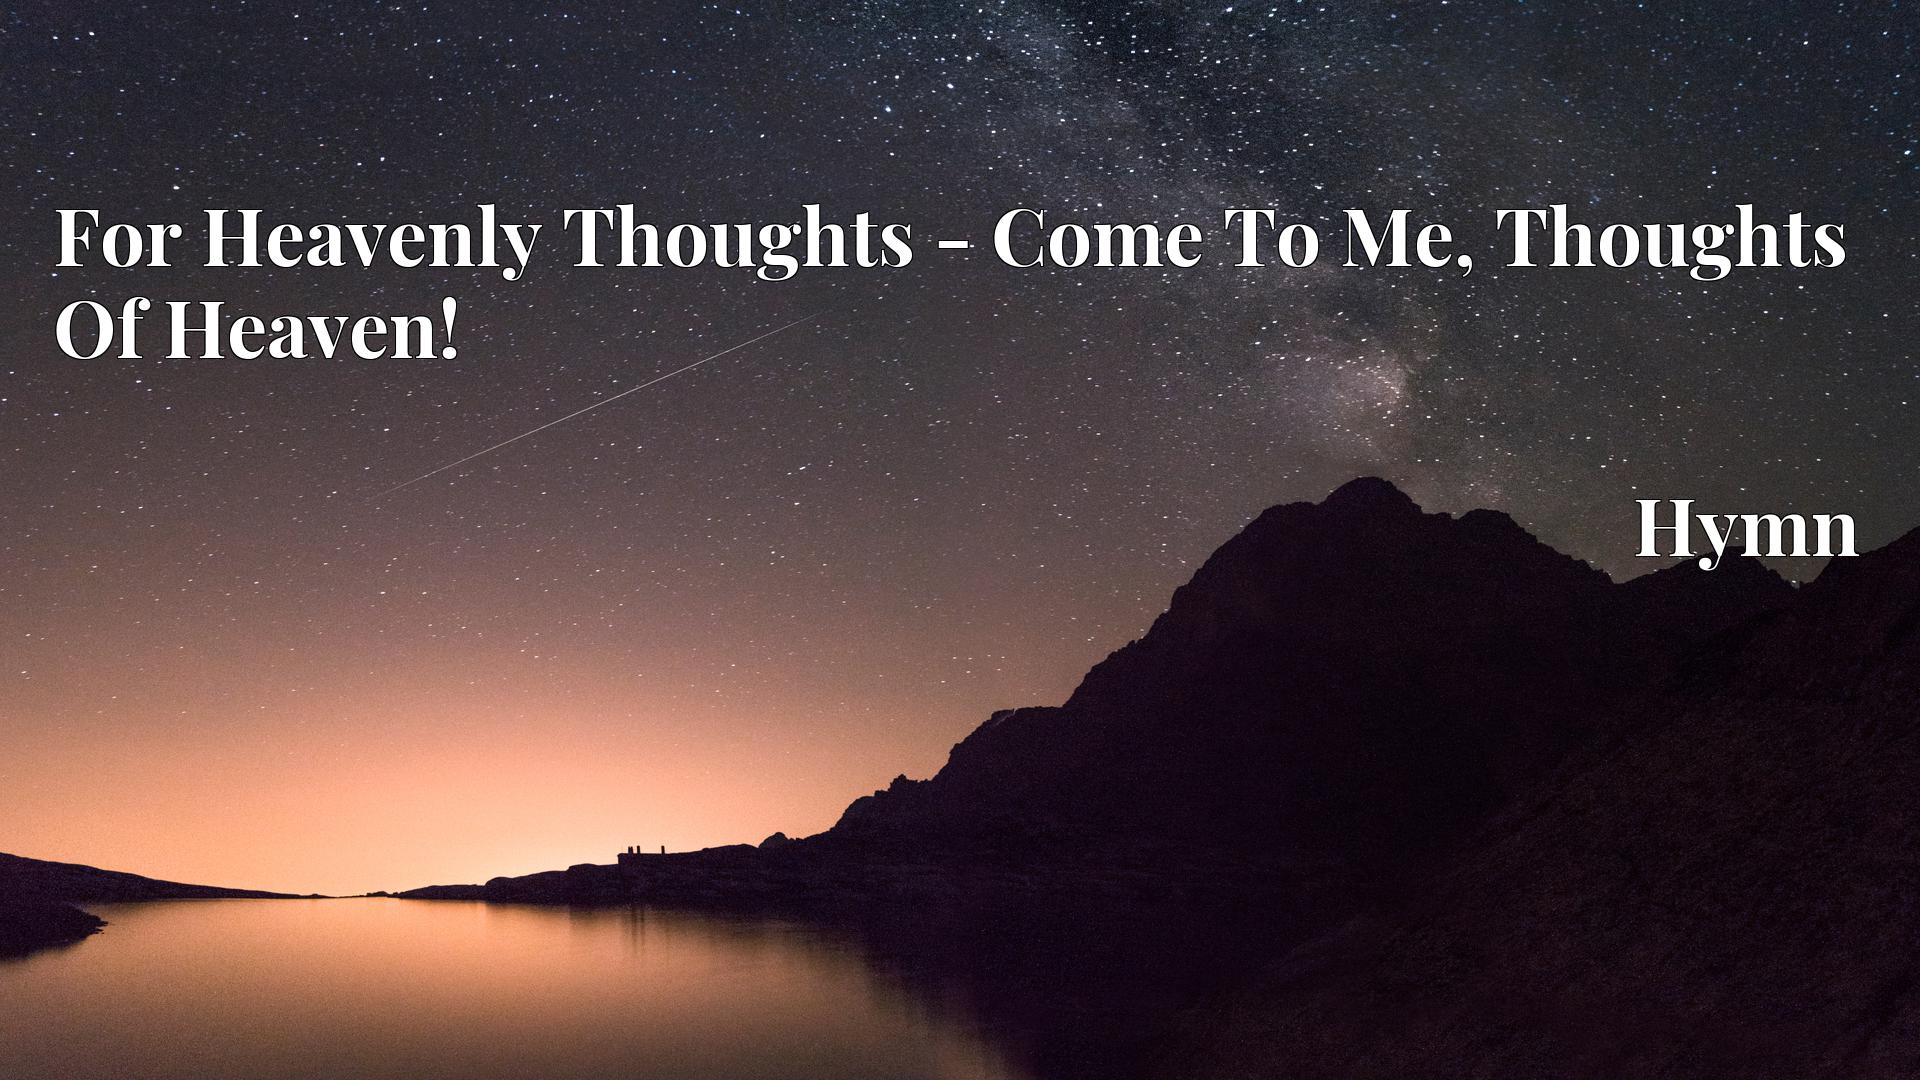 For Heavenly Thoughts - Come To Me, Thoughts Of Heaven! - Hymn